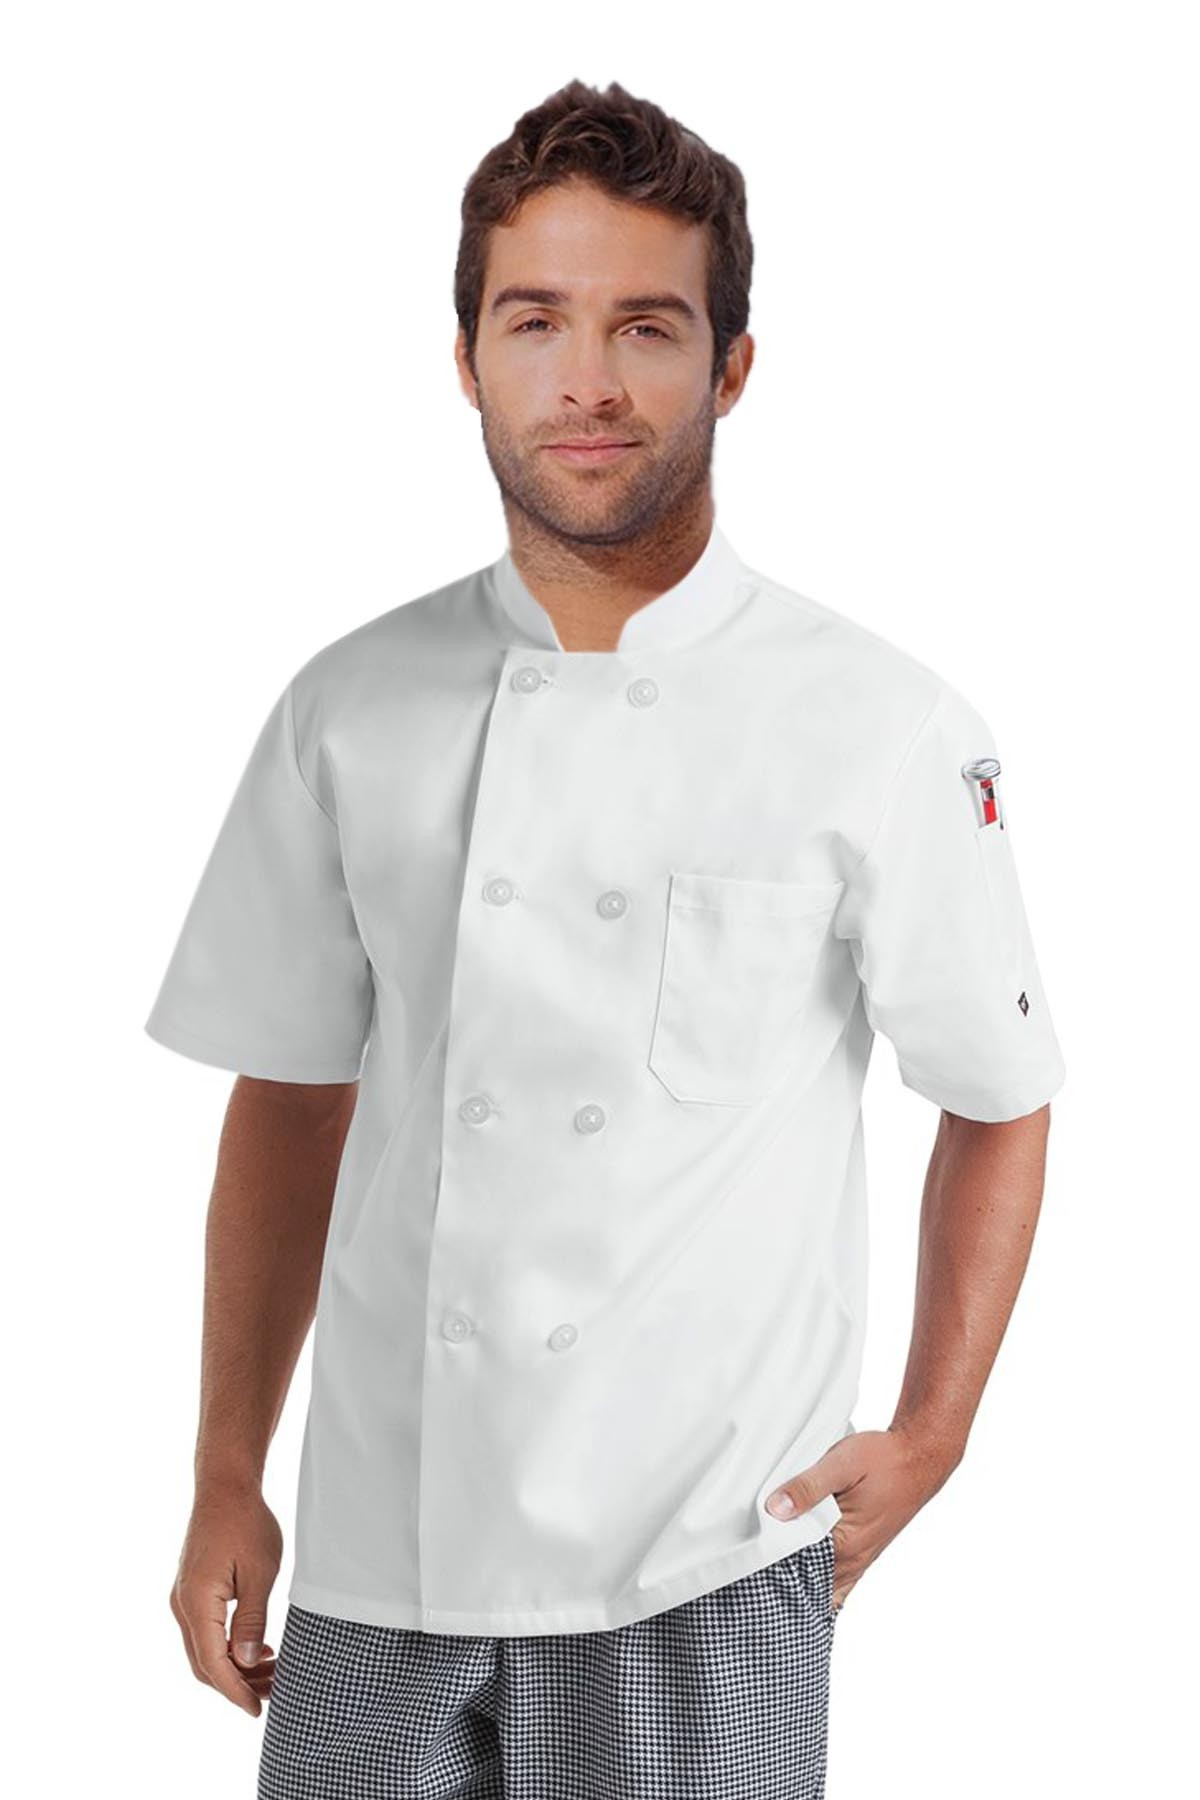 Poplin Men's Short Sleeve Chef Coat With 1 Chest pocket and 1 Sleeve Pocket - Button Front Closure(48 perc cotton 52 perc polyester Light Weight Poplin)